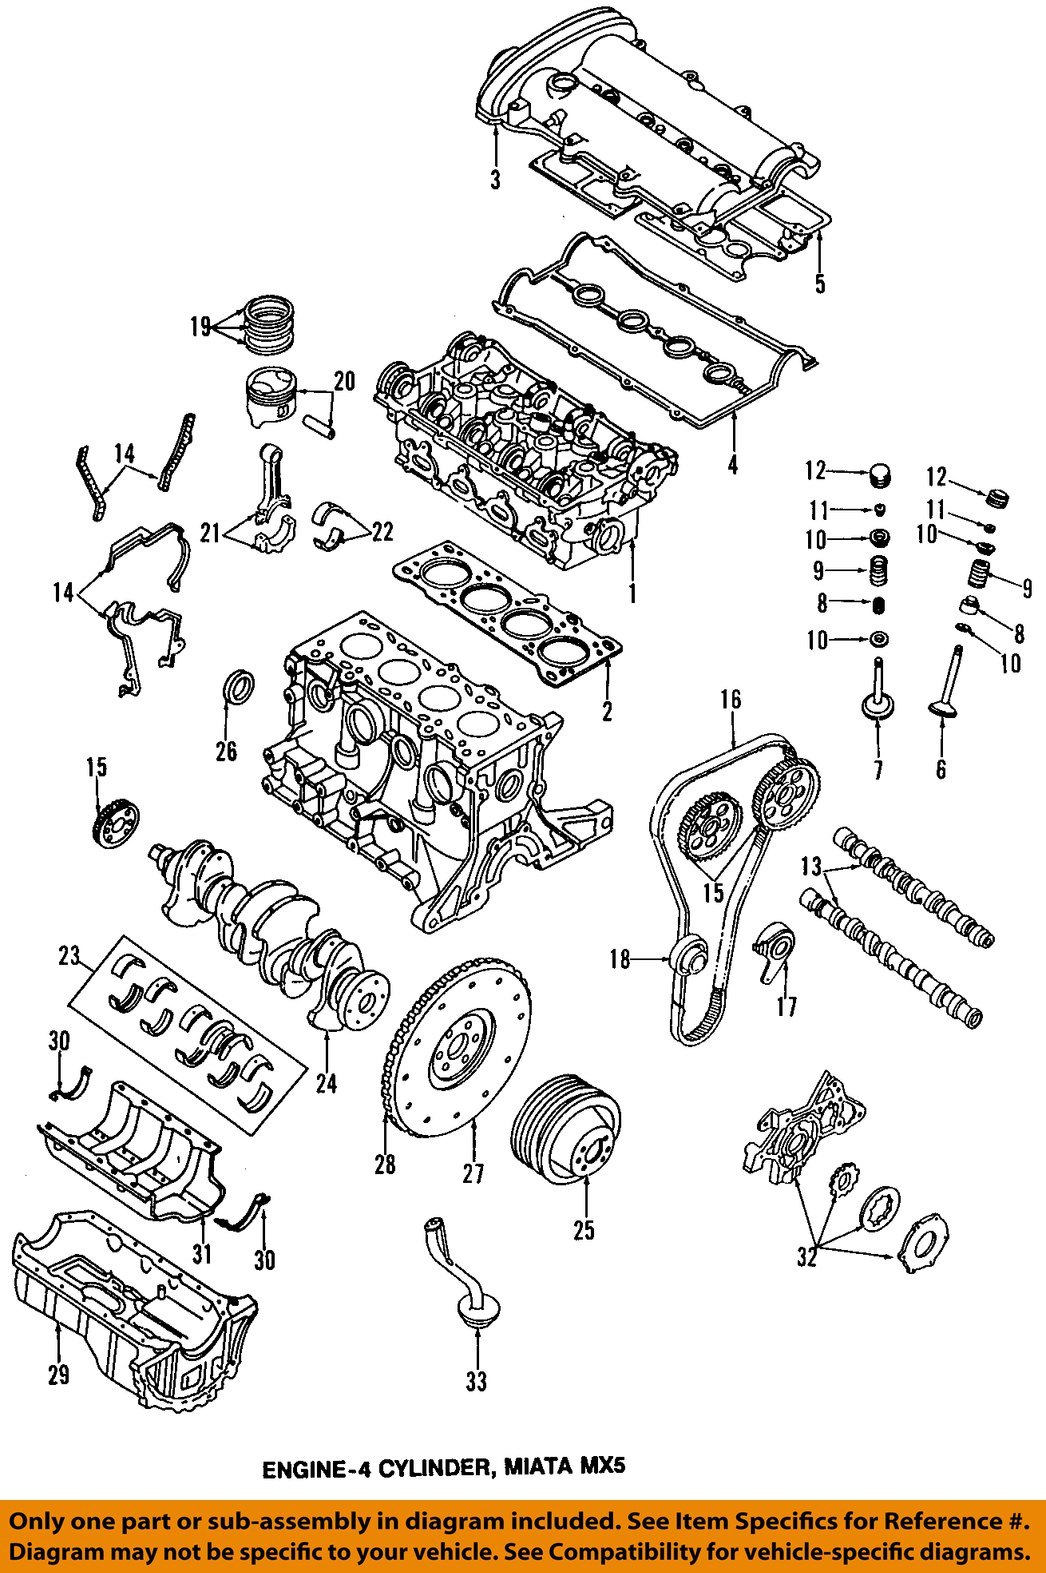 Fuel Pump Cummins Isl Qsl 9557 together with Blown Head Gasket furthermore Blue Smoke From Engines Exhaust furthermore Acura Tl Oil Leak Wiring Diagrams further 2004 2009 Toyota Prius Timing Cover Oil Leak Wpictures. on engine oil pan gasket replacement cost